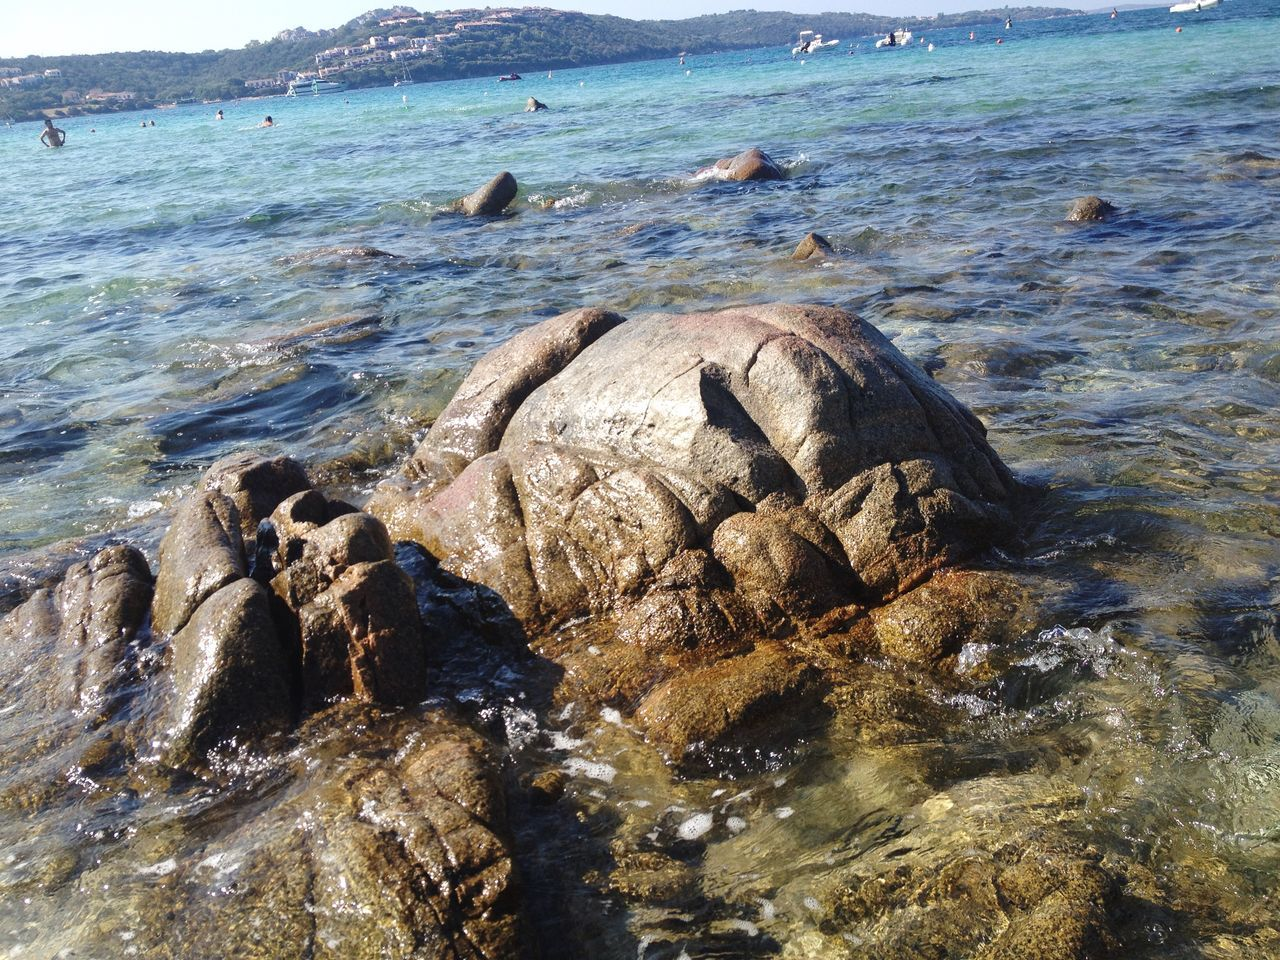 Sardegna Summer 2015 July Sun Sea Drinks Book Relax La perfetta Vacanza!